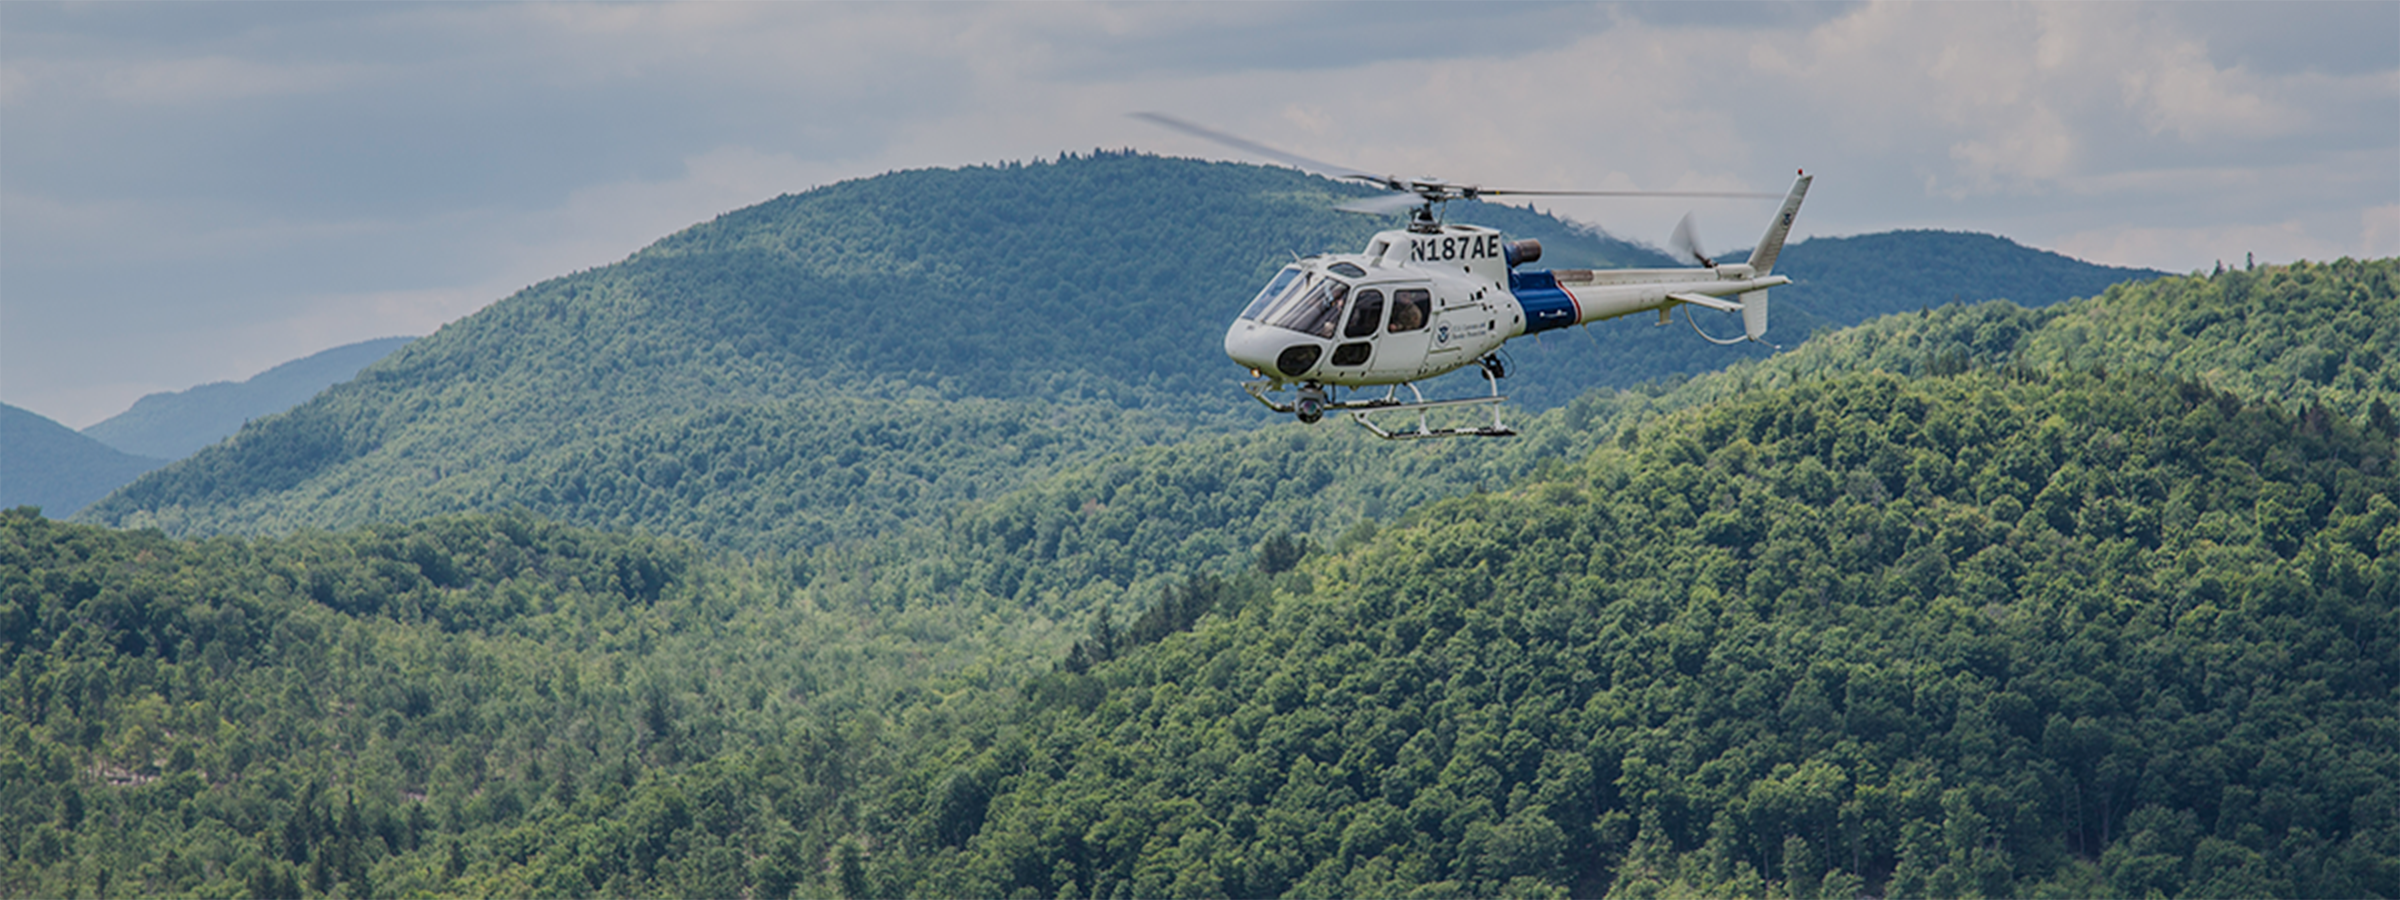 An AS350 aircrew conducts surveillance operations in New York, following the escape of two convicted killers.